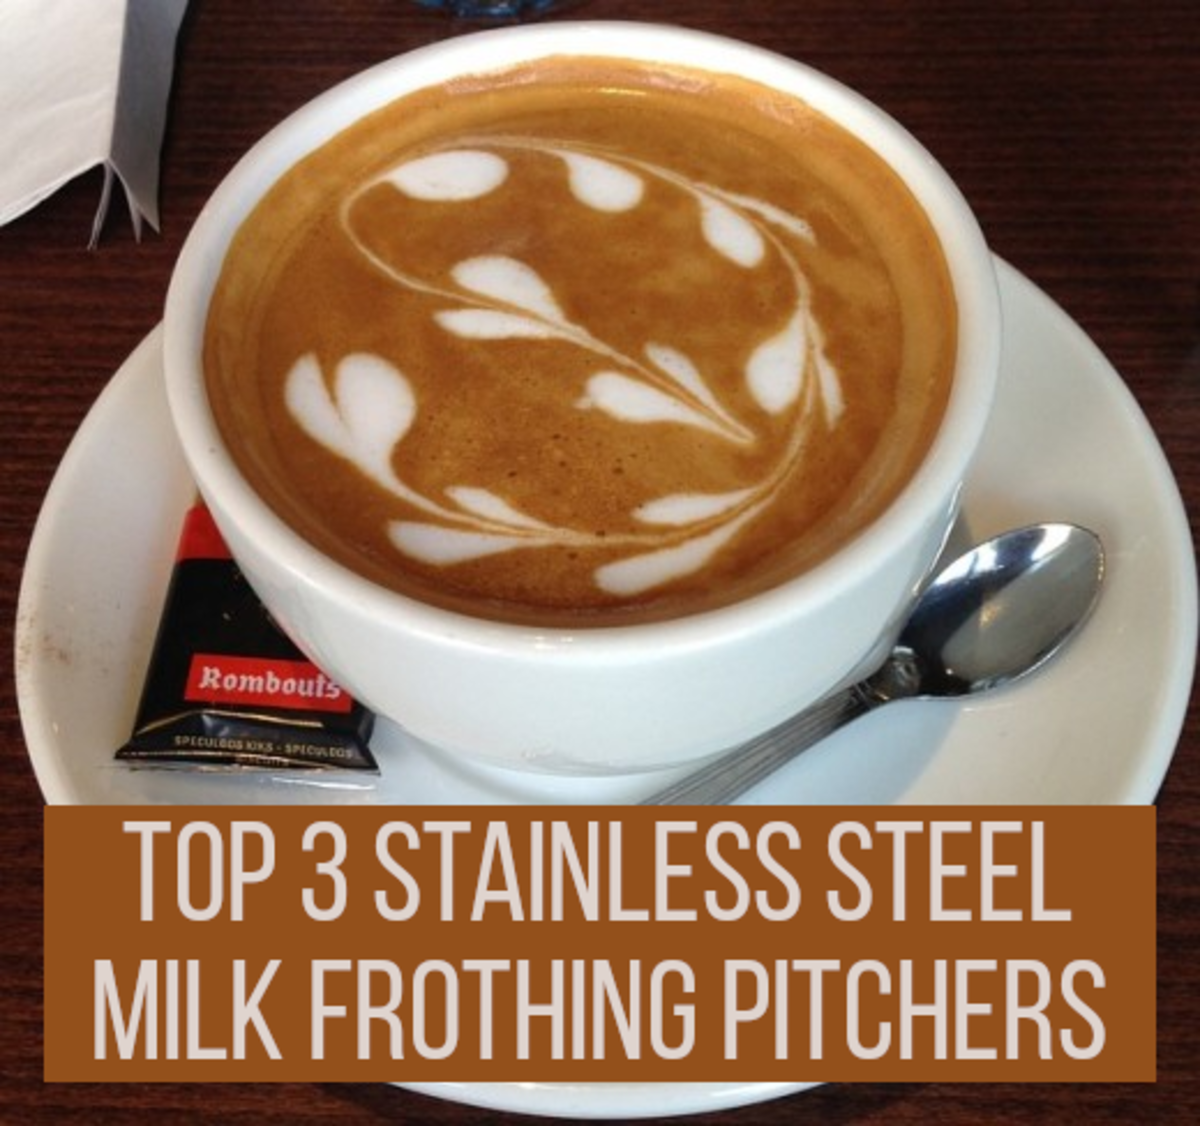 Looking for the best stainless steel milk frothing pitchers? Read on for my experiences and suggestions...